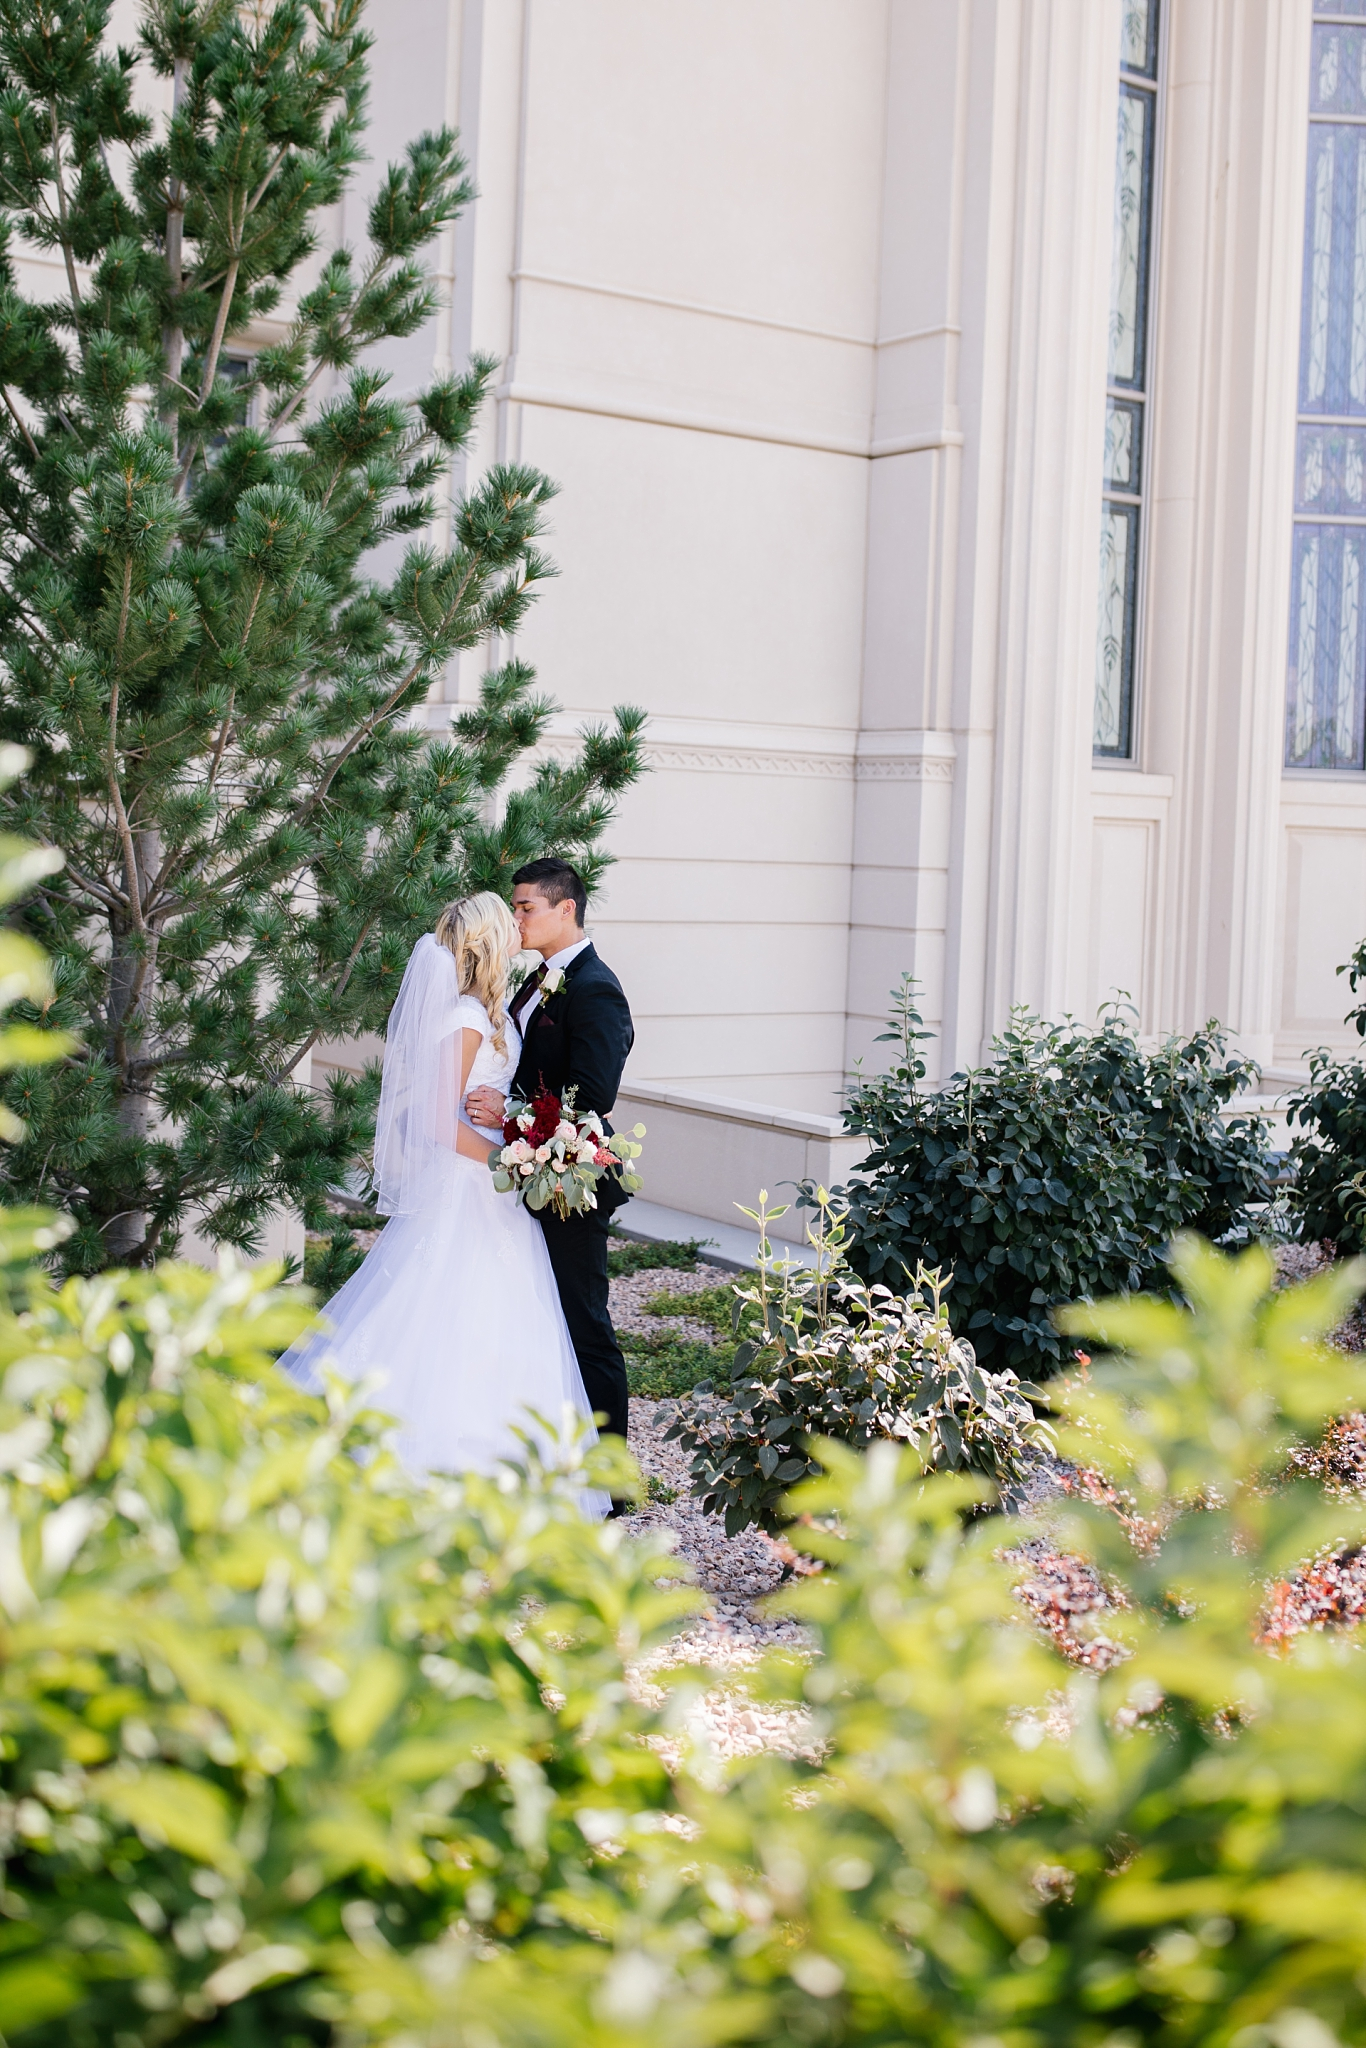 HannahChaseWedding-215_Lizzie-B-Imagery-Utah-Wedding-Photographer-Bridal-Photography-Payson-Utah-Temple-Clarion-Gardens-Catering-and-Events-Center.jpg